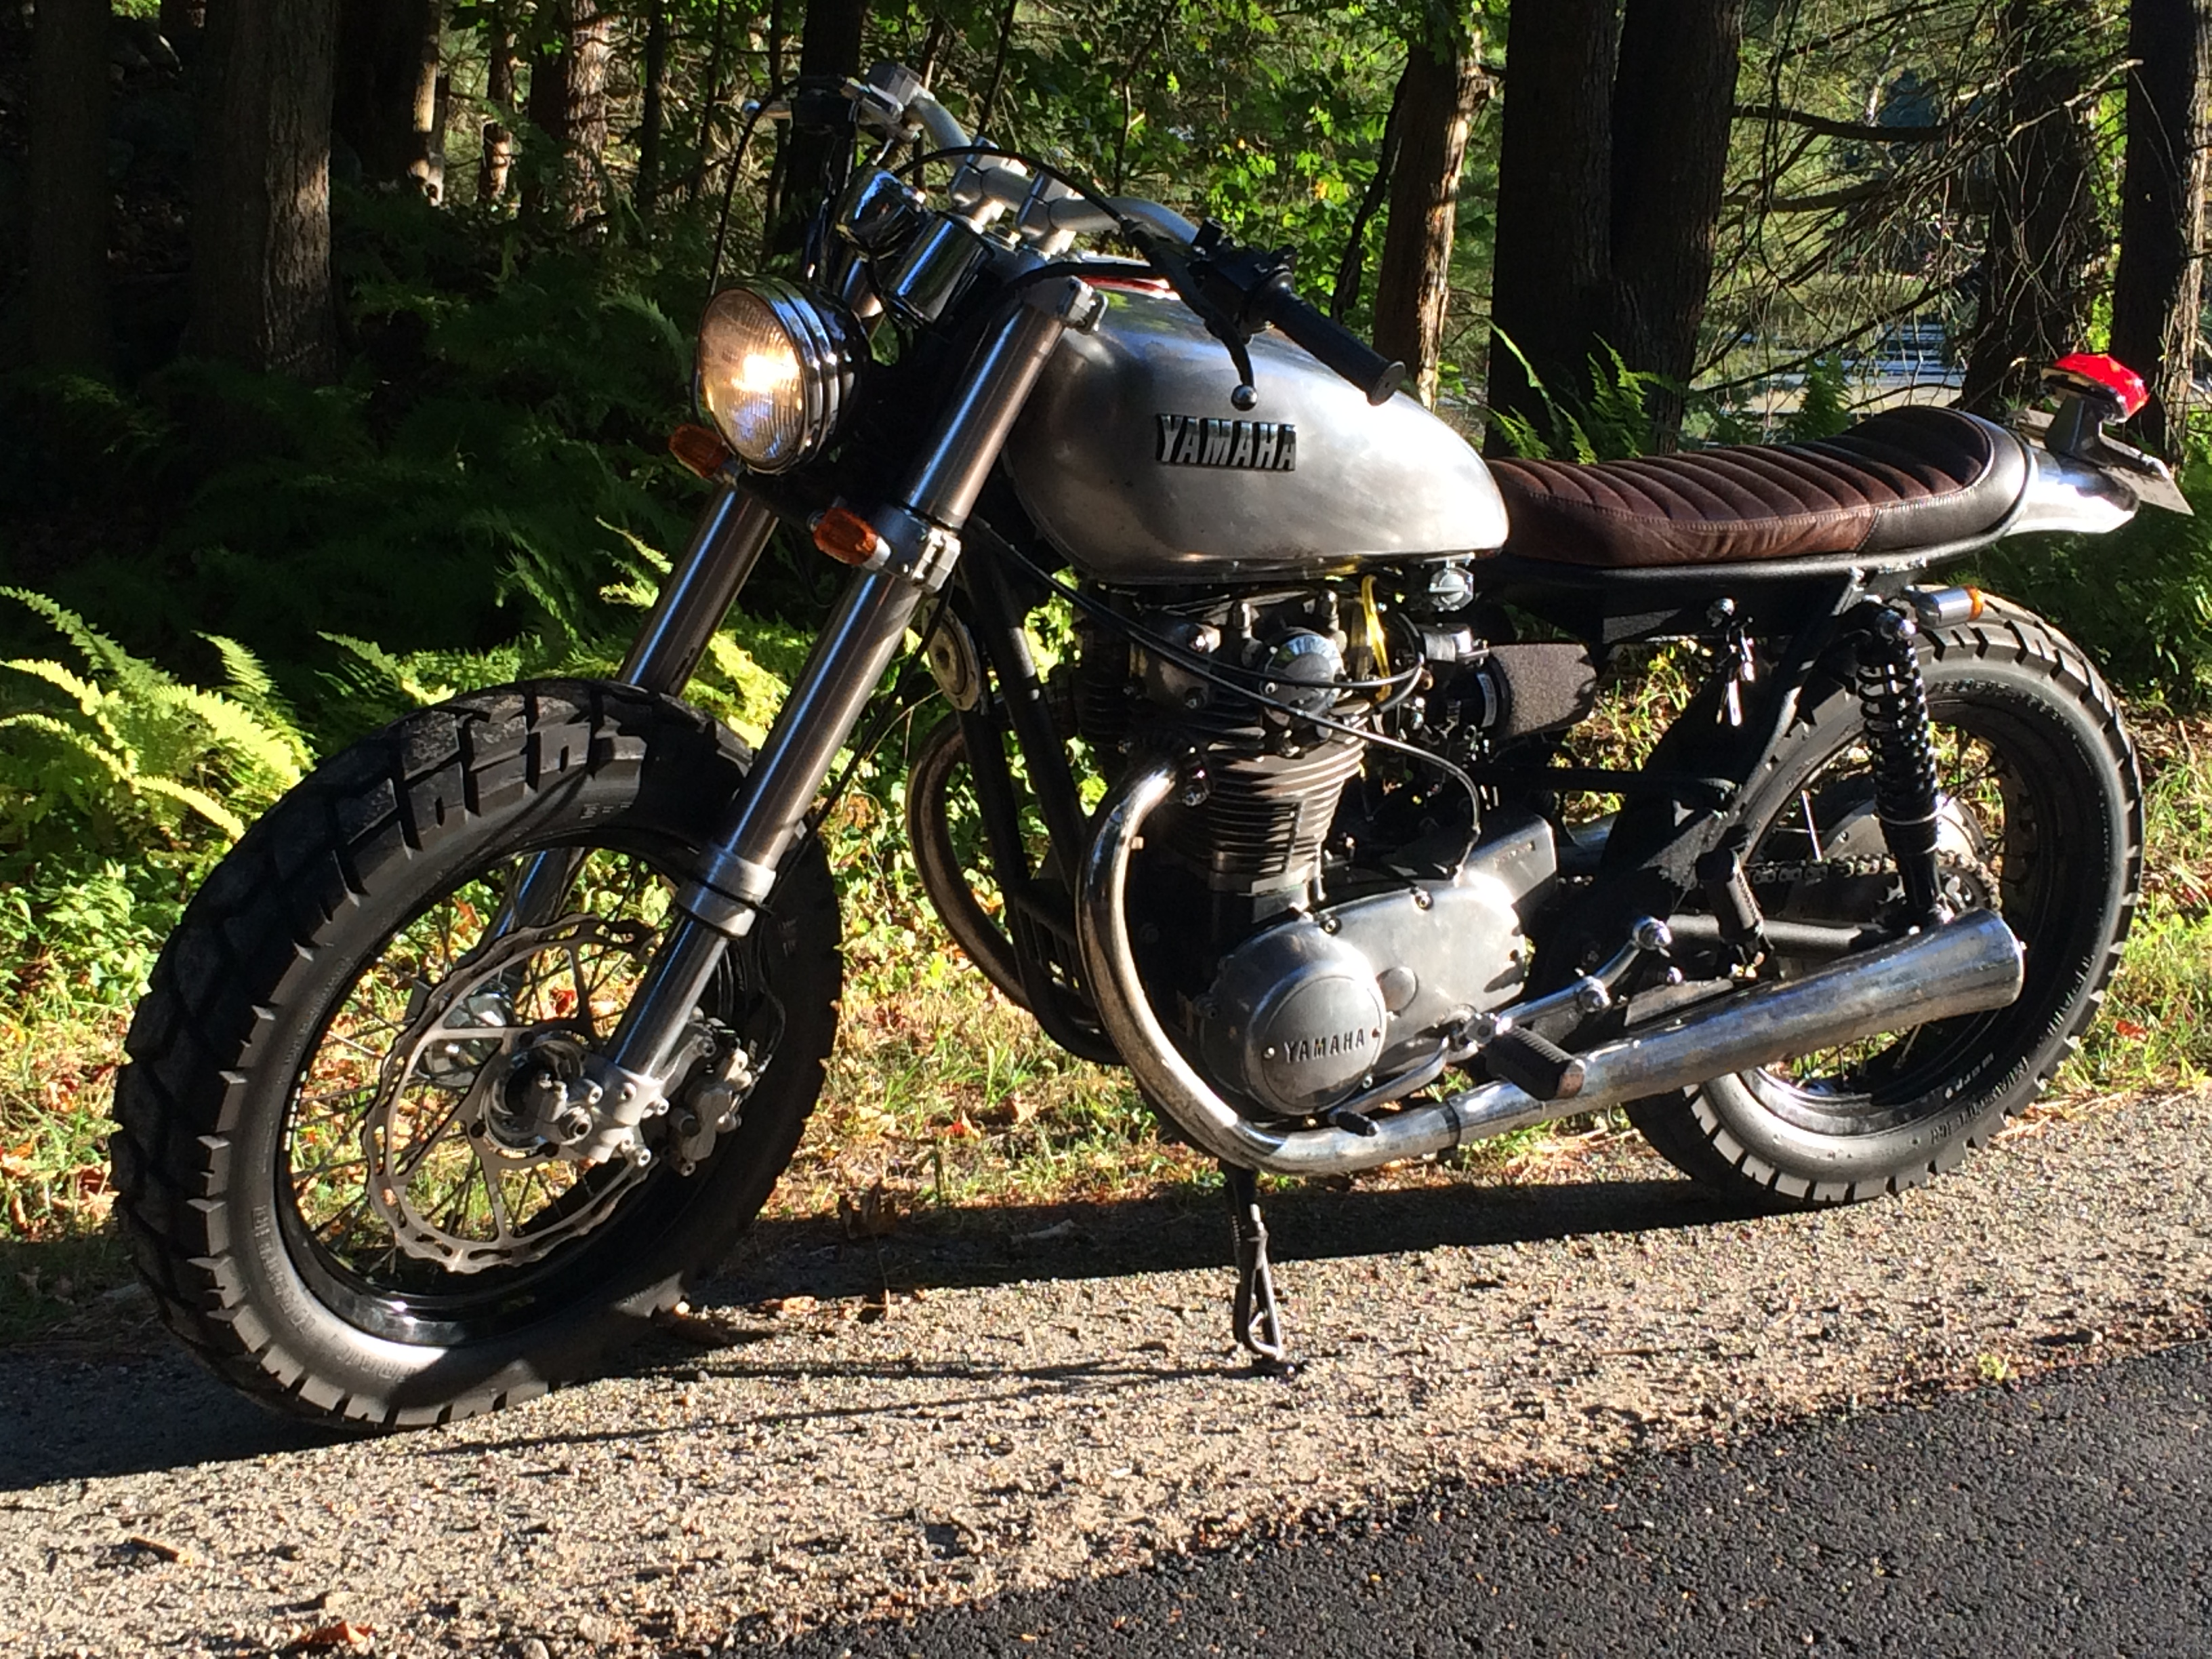 TruNorth XS650 In The Builders Words